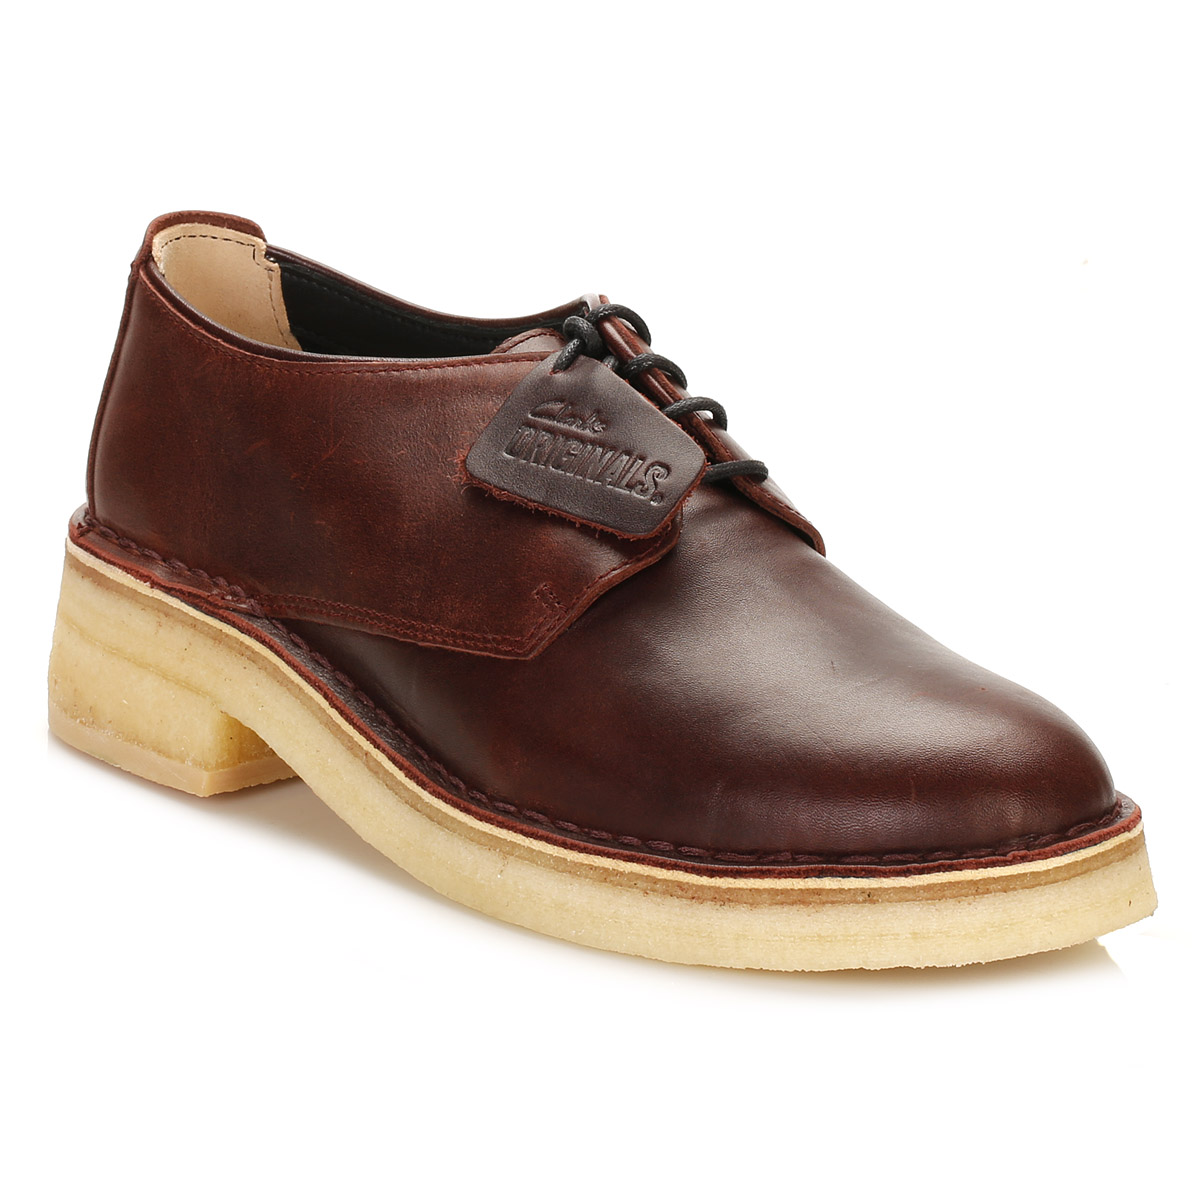 Find a clarks in Derby, Derbyshire on Gumtree, the #1 site for Shoes & Boots For Sale classifieds ads in the UK.